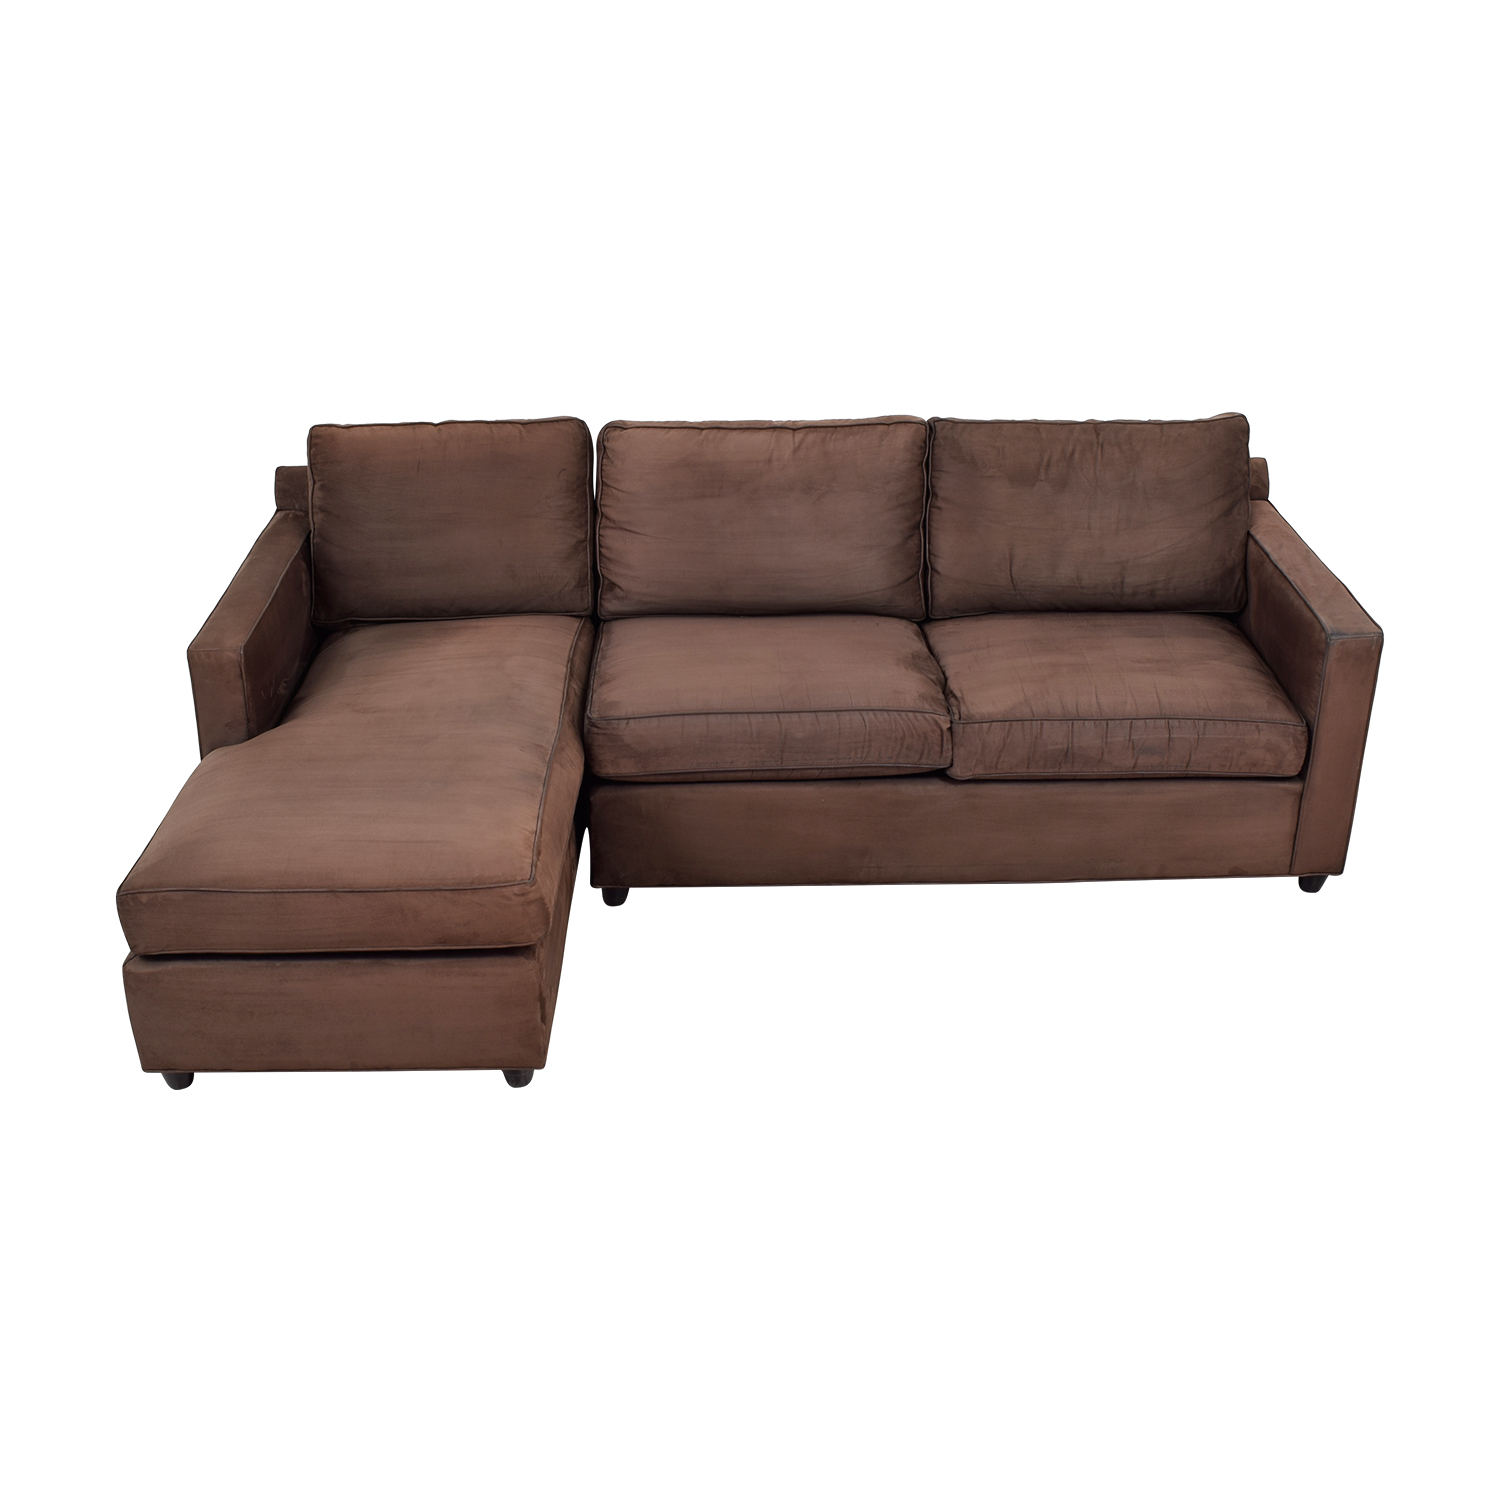 Crate & Barrel Crate & Barrel Diplomat Brown Sectional for sale